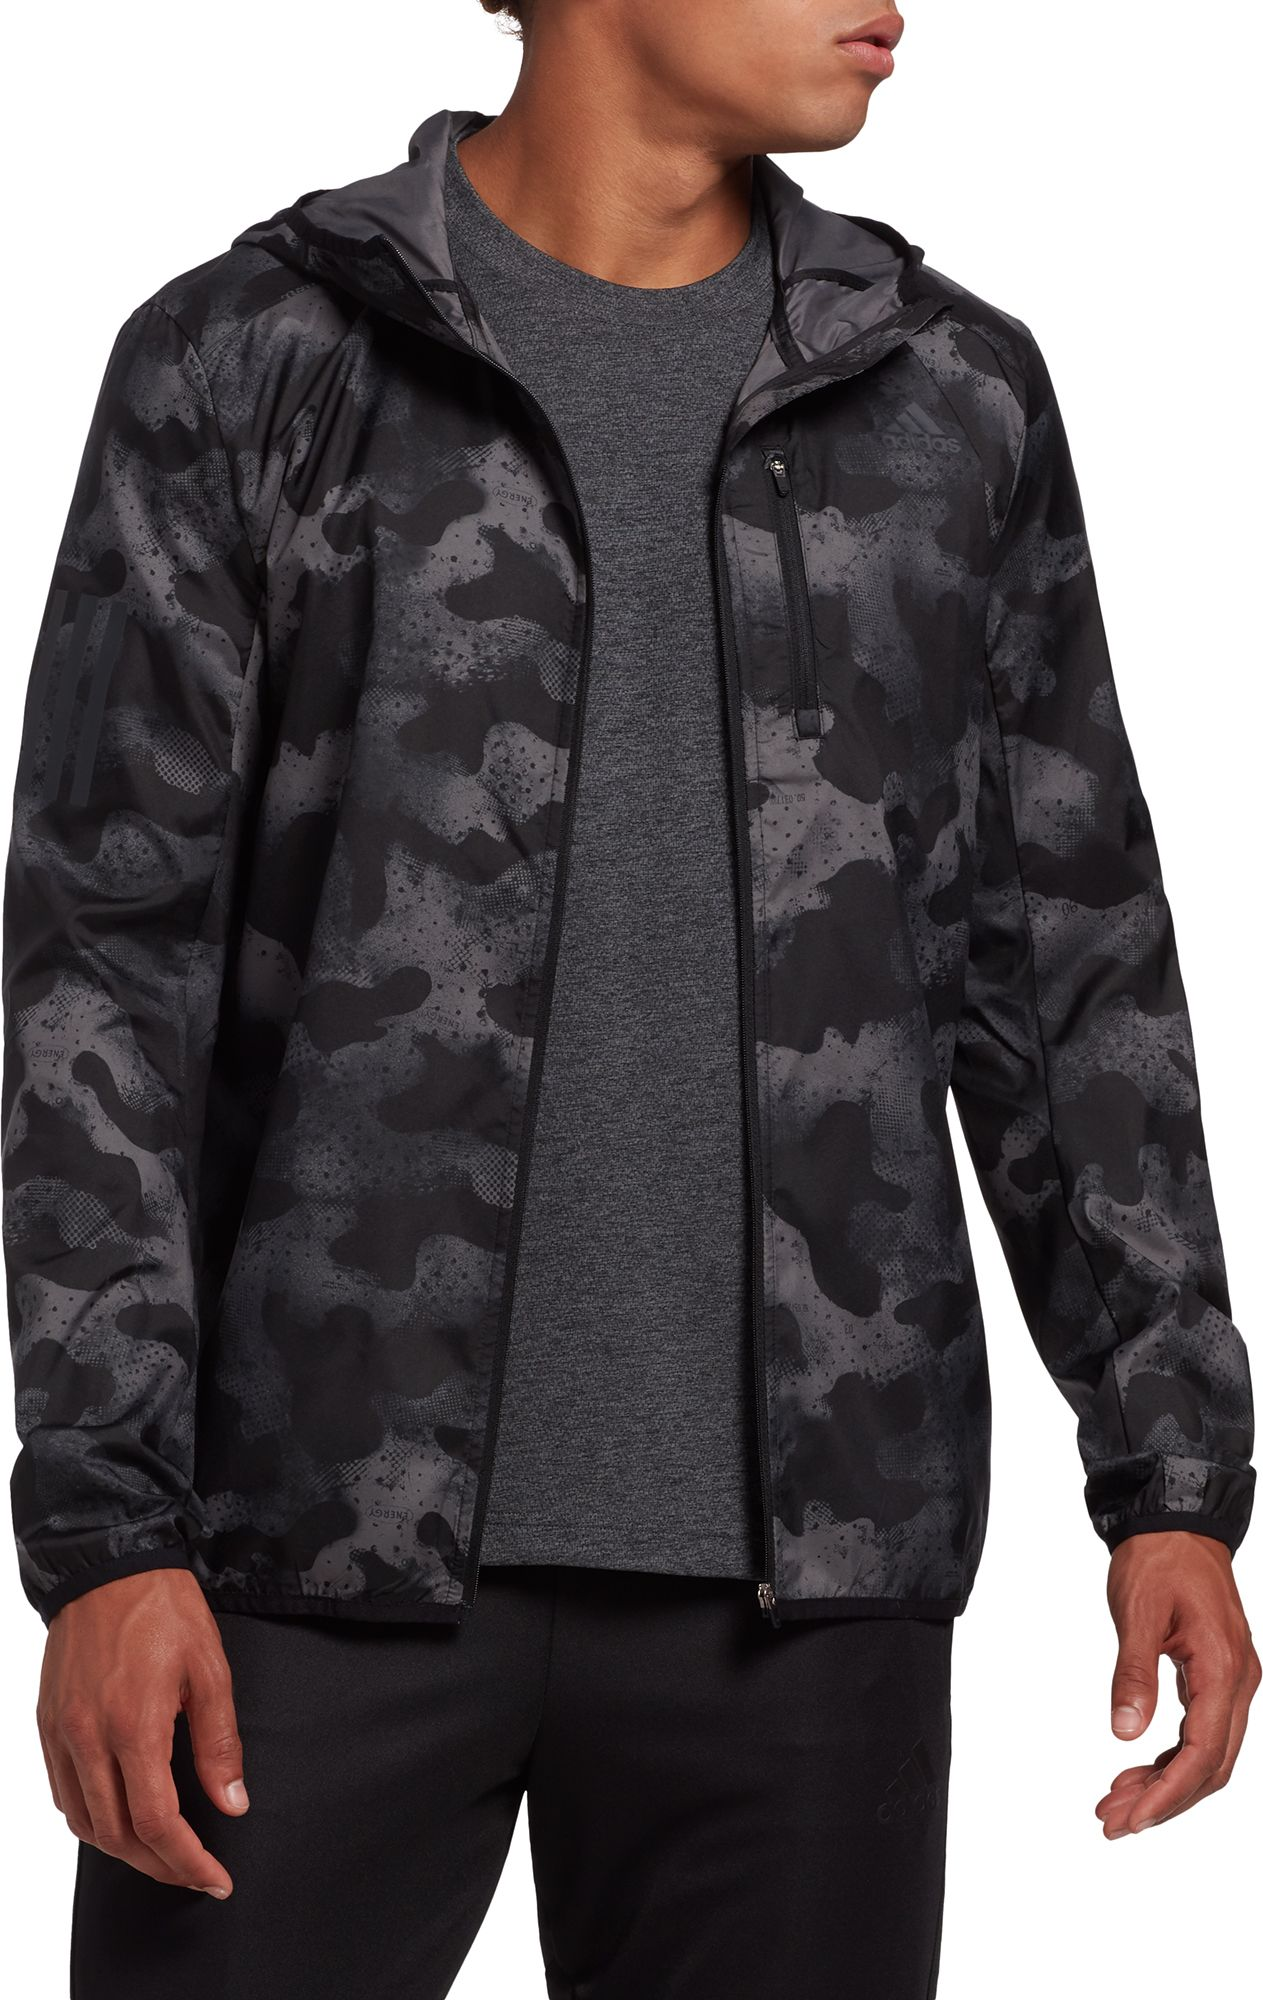 adidas Men's Own The Run Camouflage Running Jacket, Size: Small, Gray